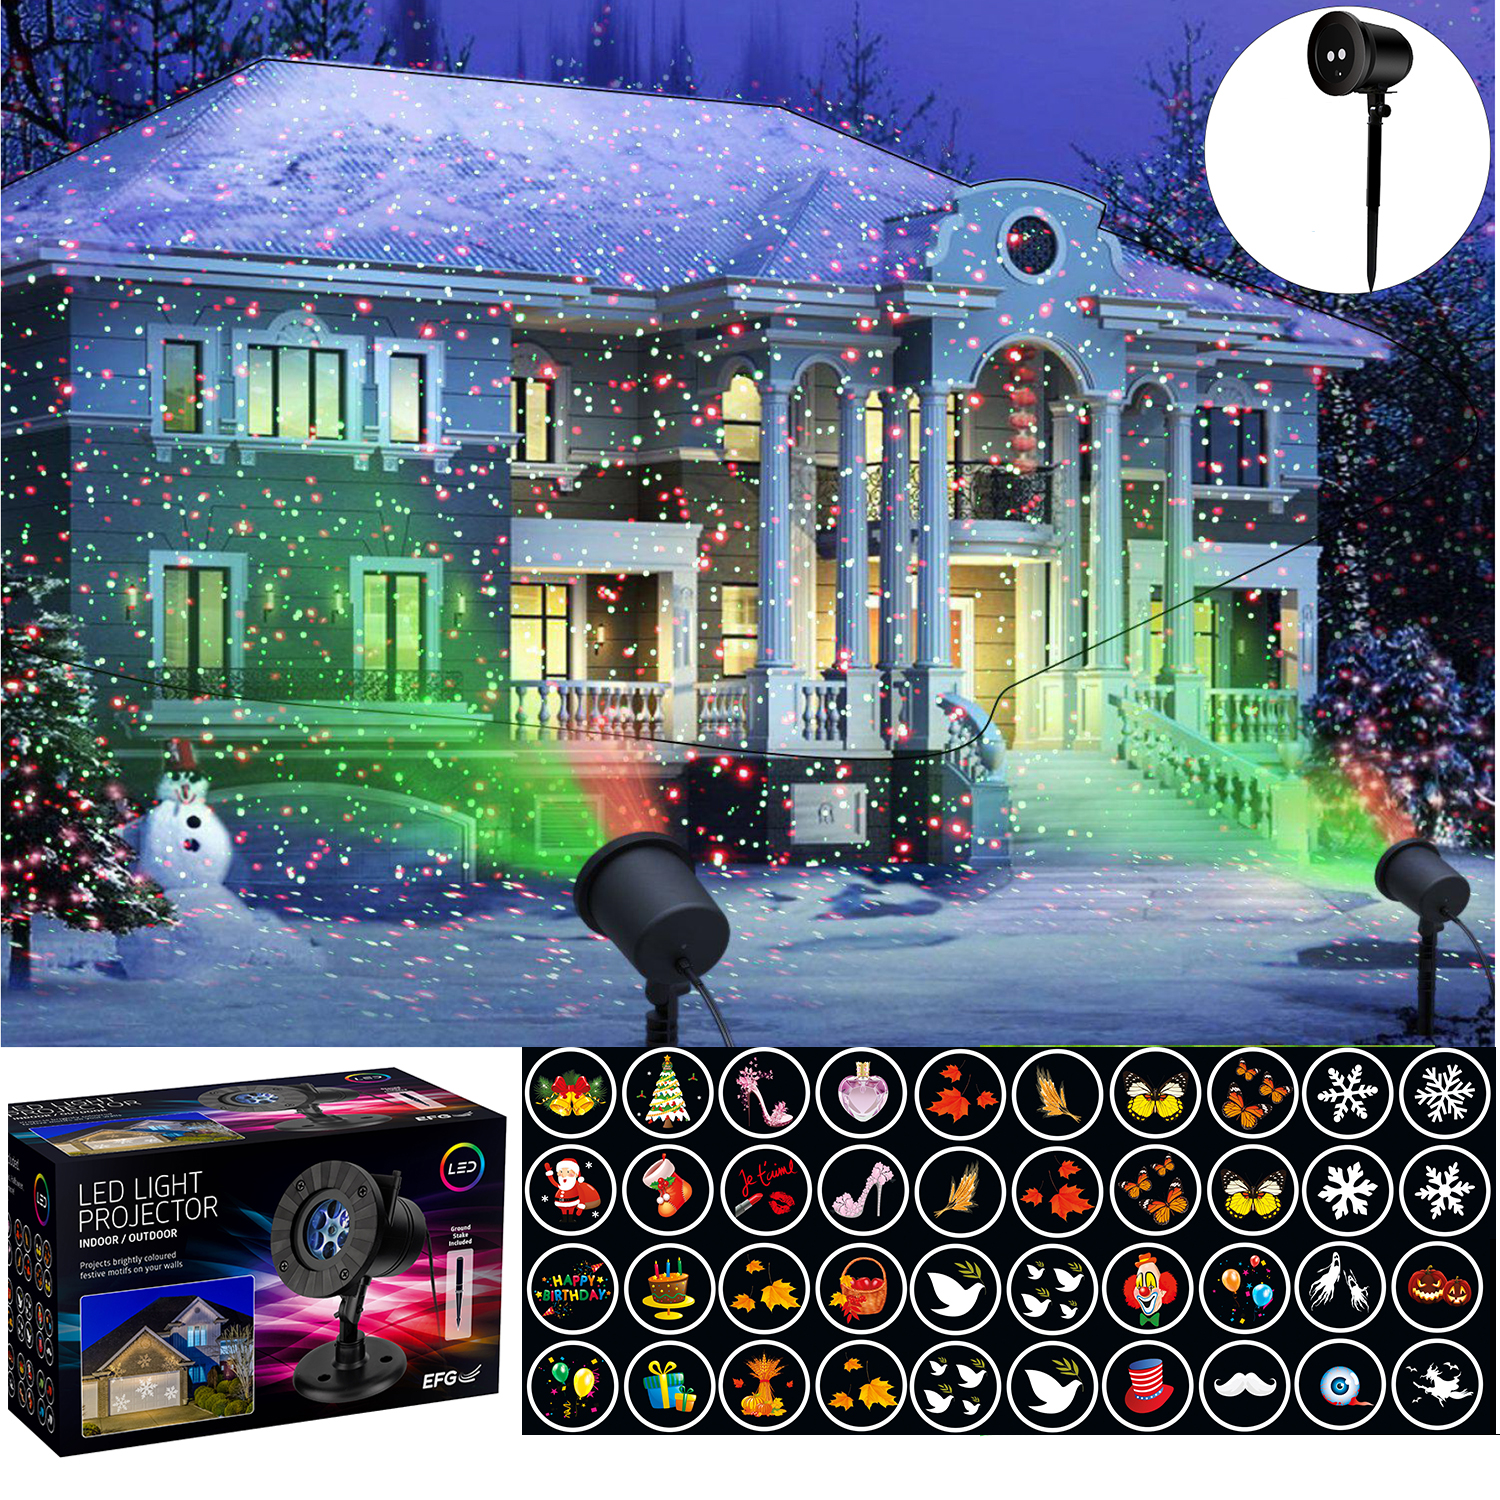 Christmas Projector.Details About Outdoor Led Lights Shape Star Projector Projected Christmas Xmas 12 Themes Laser